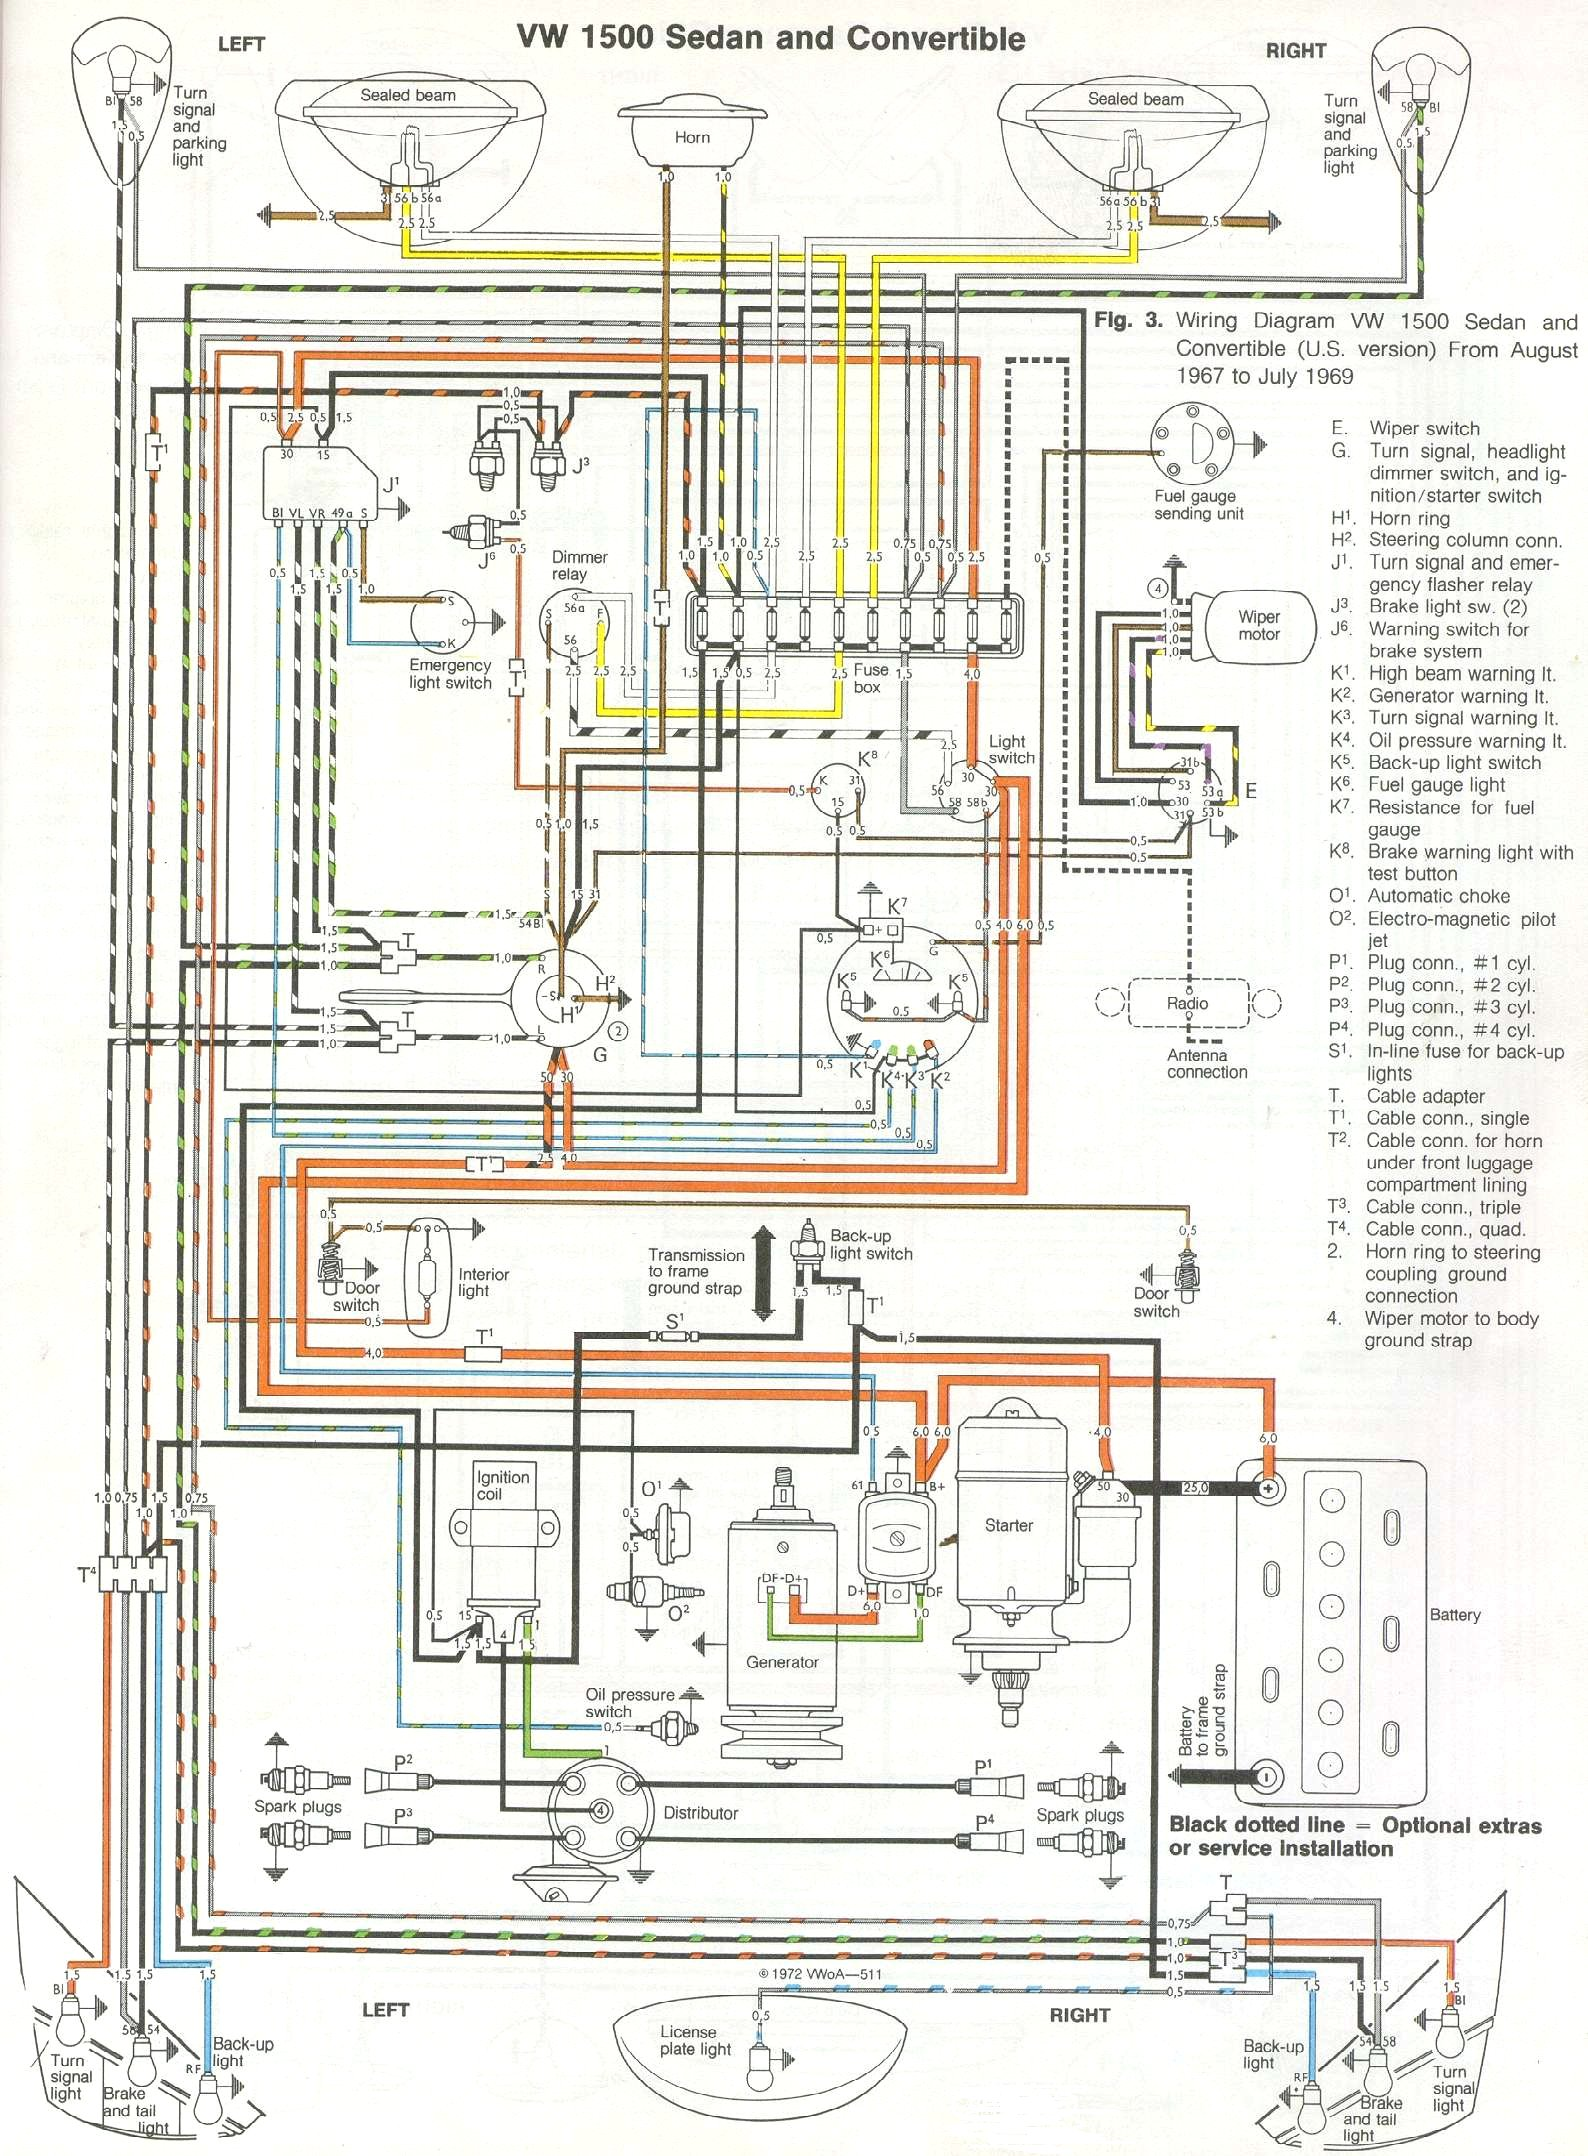 97 Golf Fuse Diagram Library Of Wiring Diagrams 2011 Ford Ranger Box 1969 71 Beetle Thegoldenbug Com Types